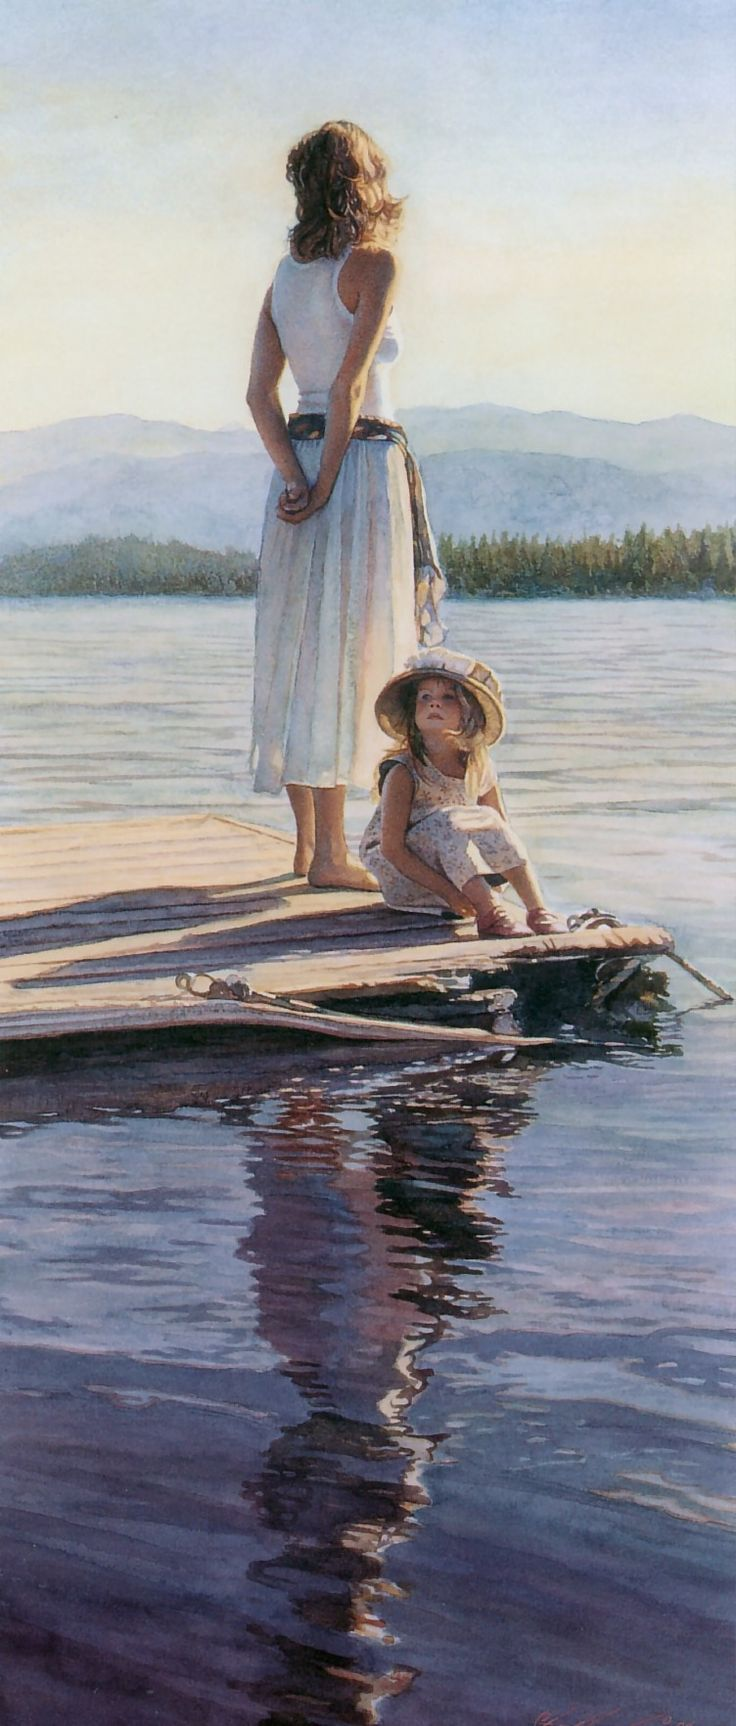 Steve Hanks - Sharing in Silence